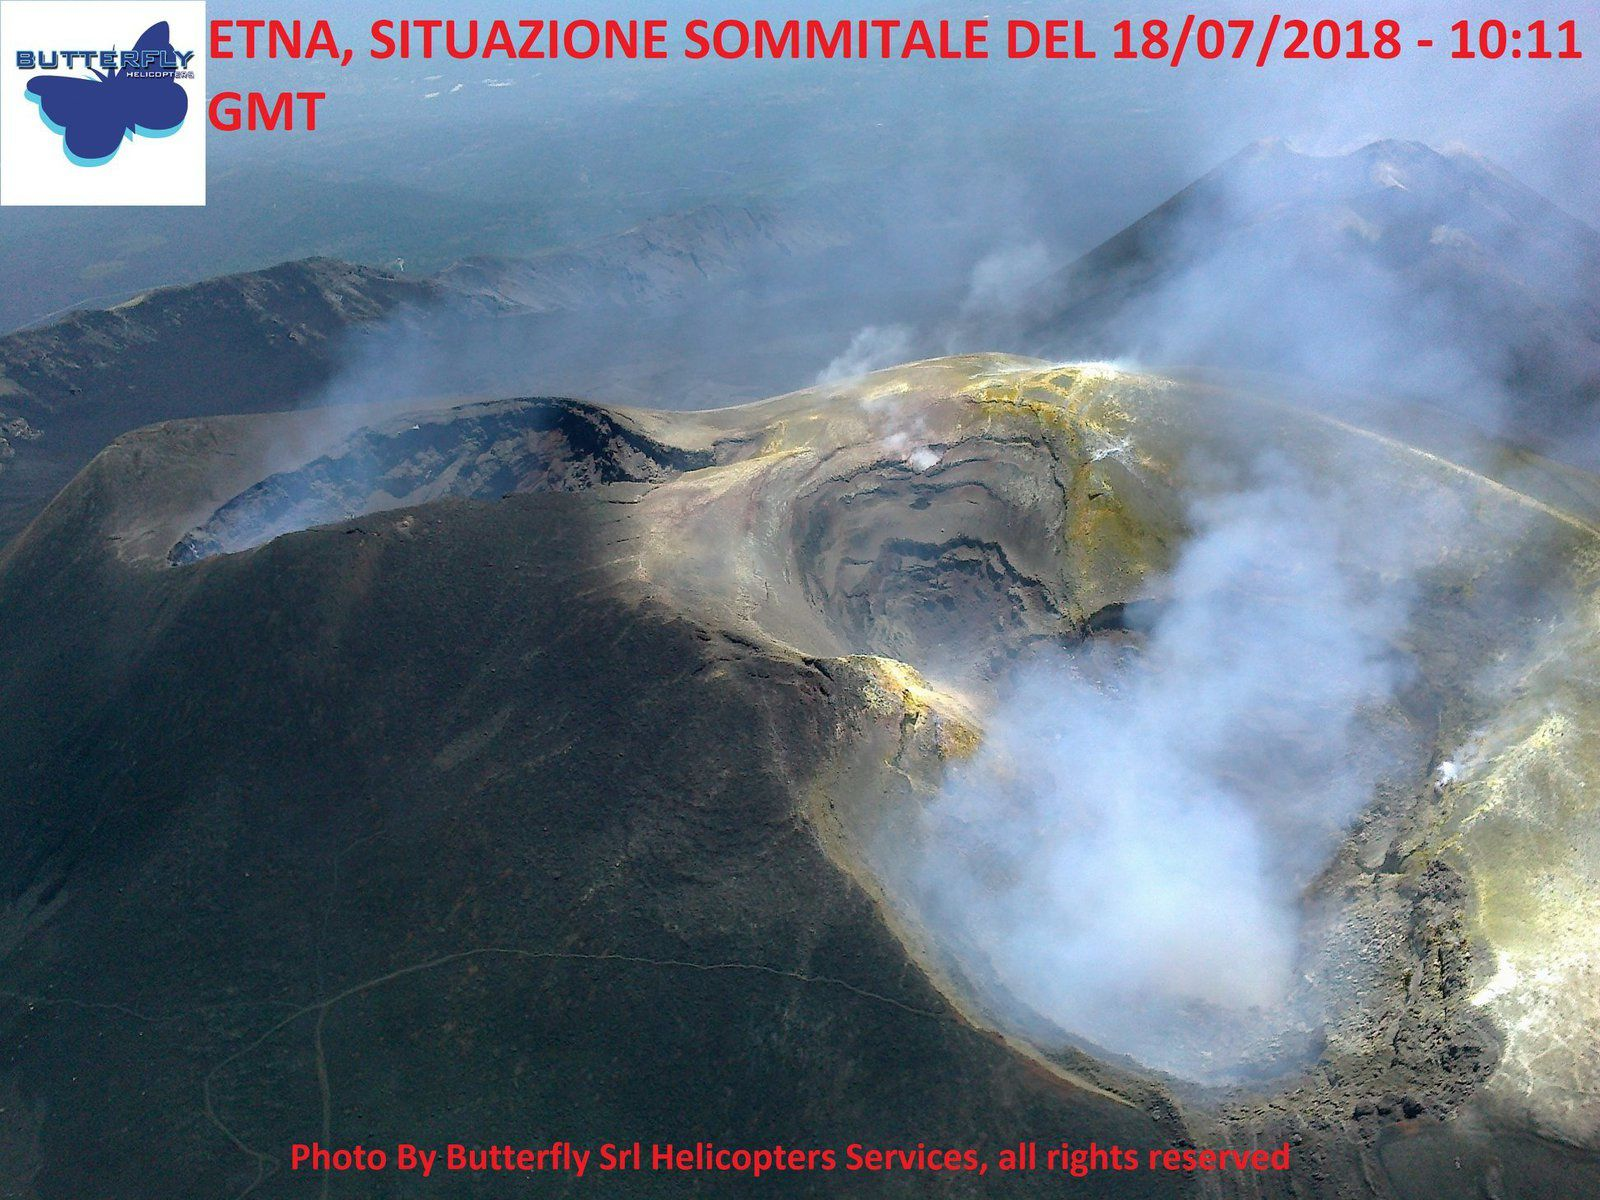 Etna - summit craters on 18.07.2018 / 10h11 - photo J.Nasi / Butterfly helico